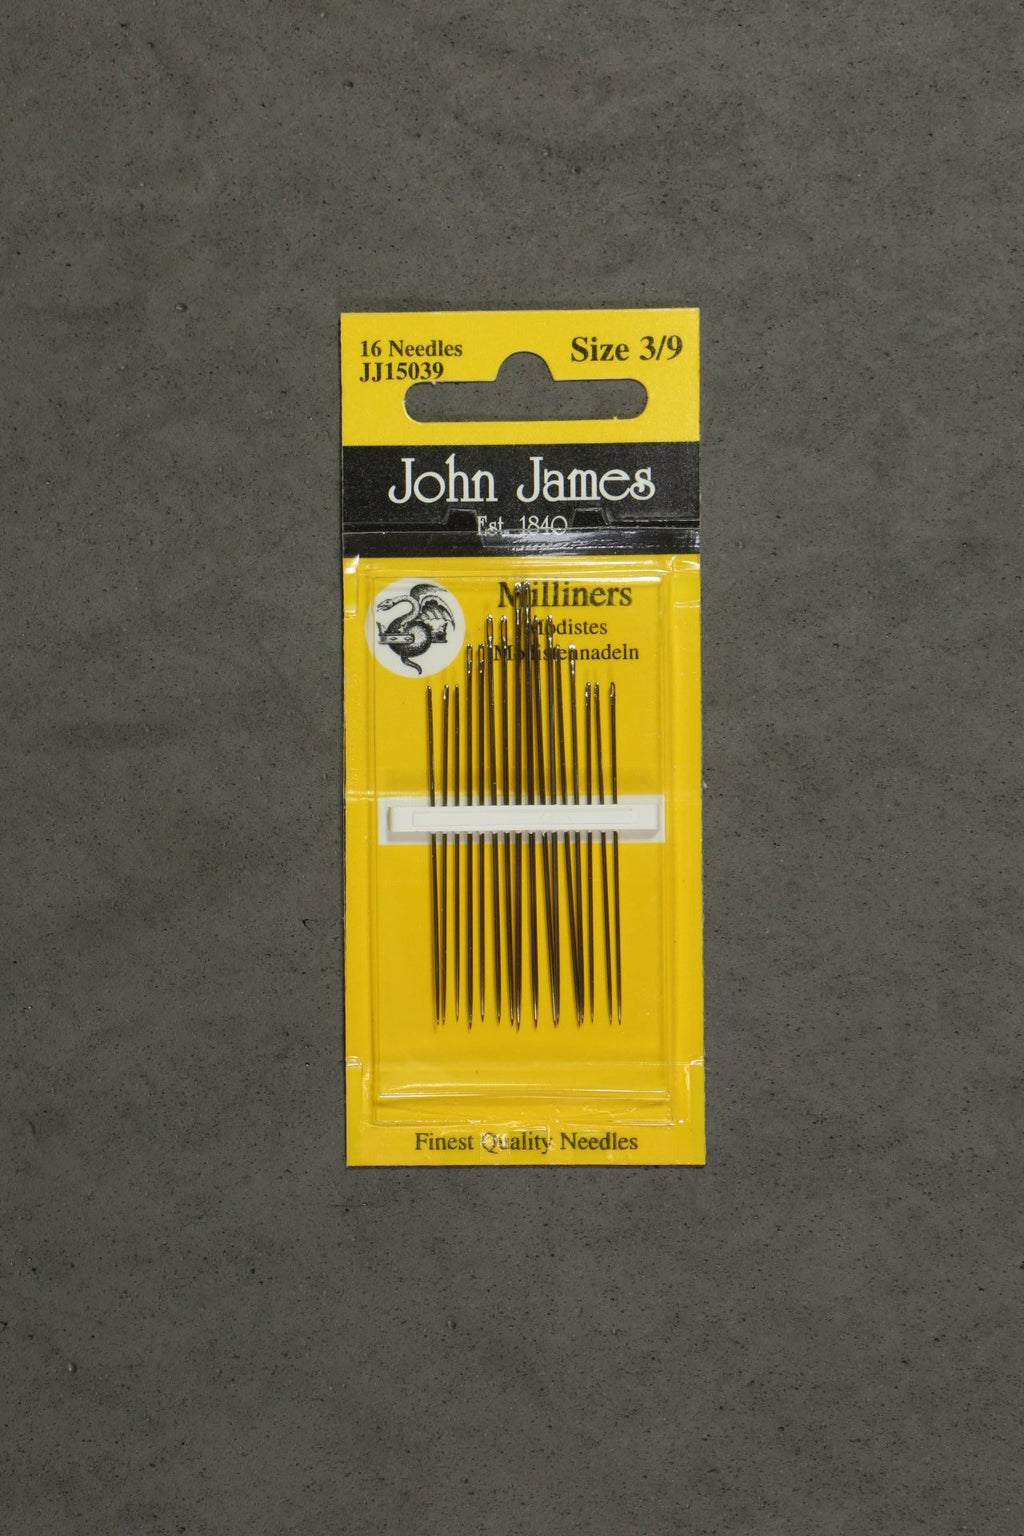 John James Milliners Embroidery Needles